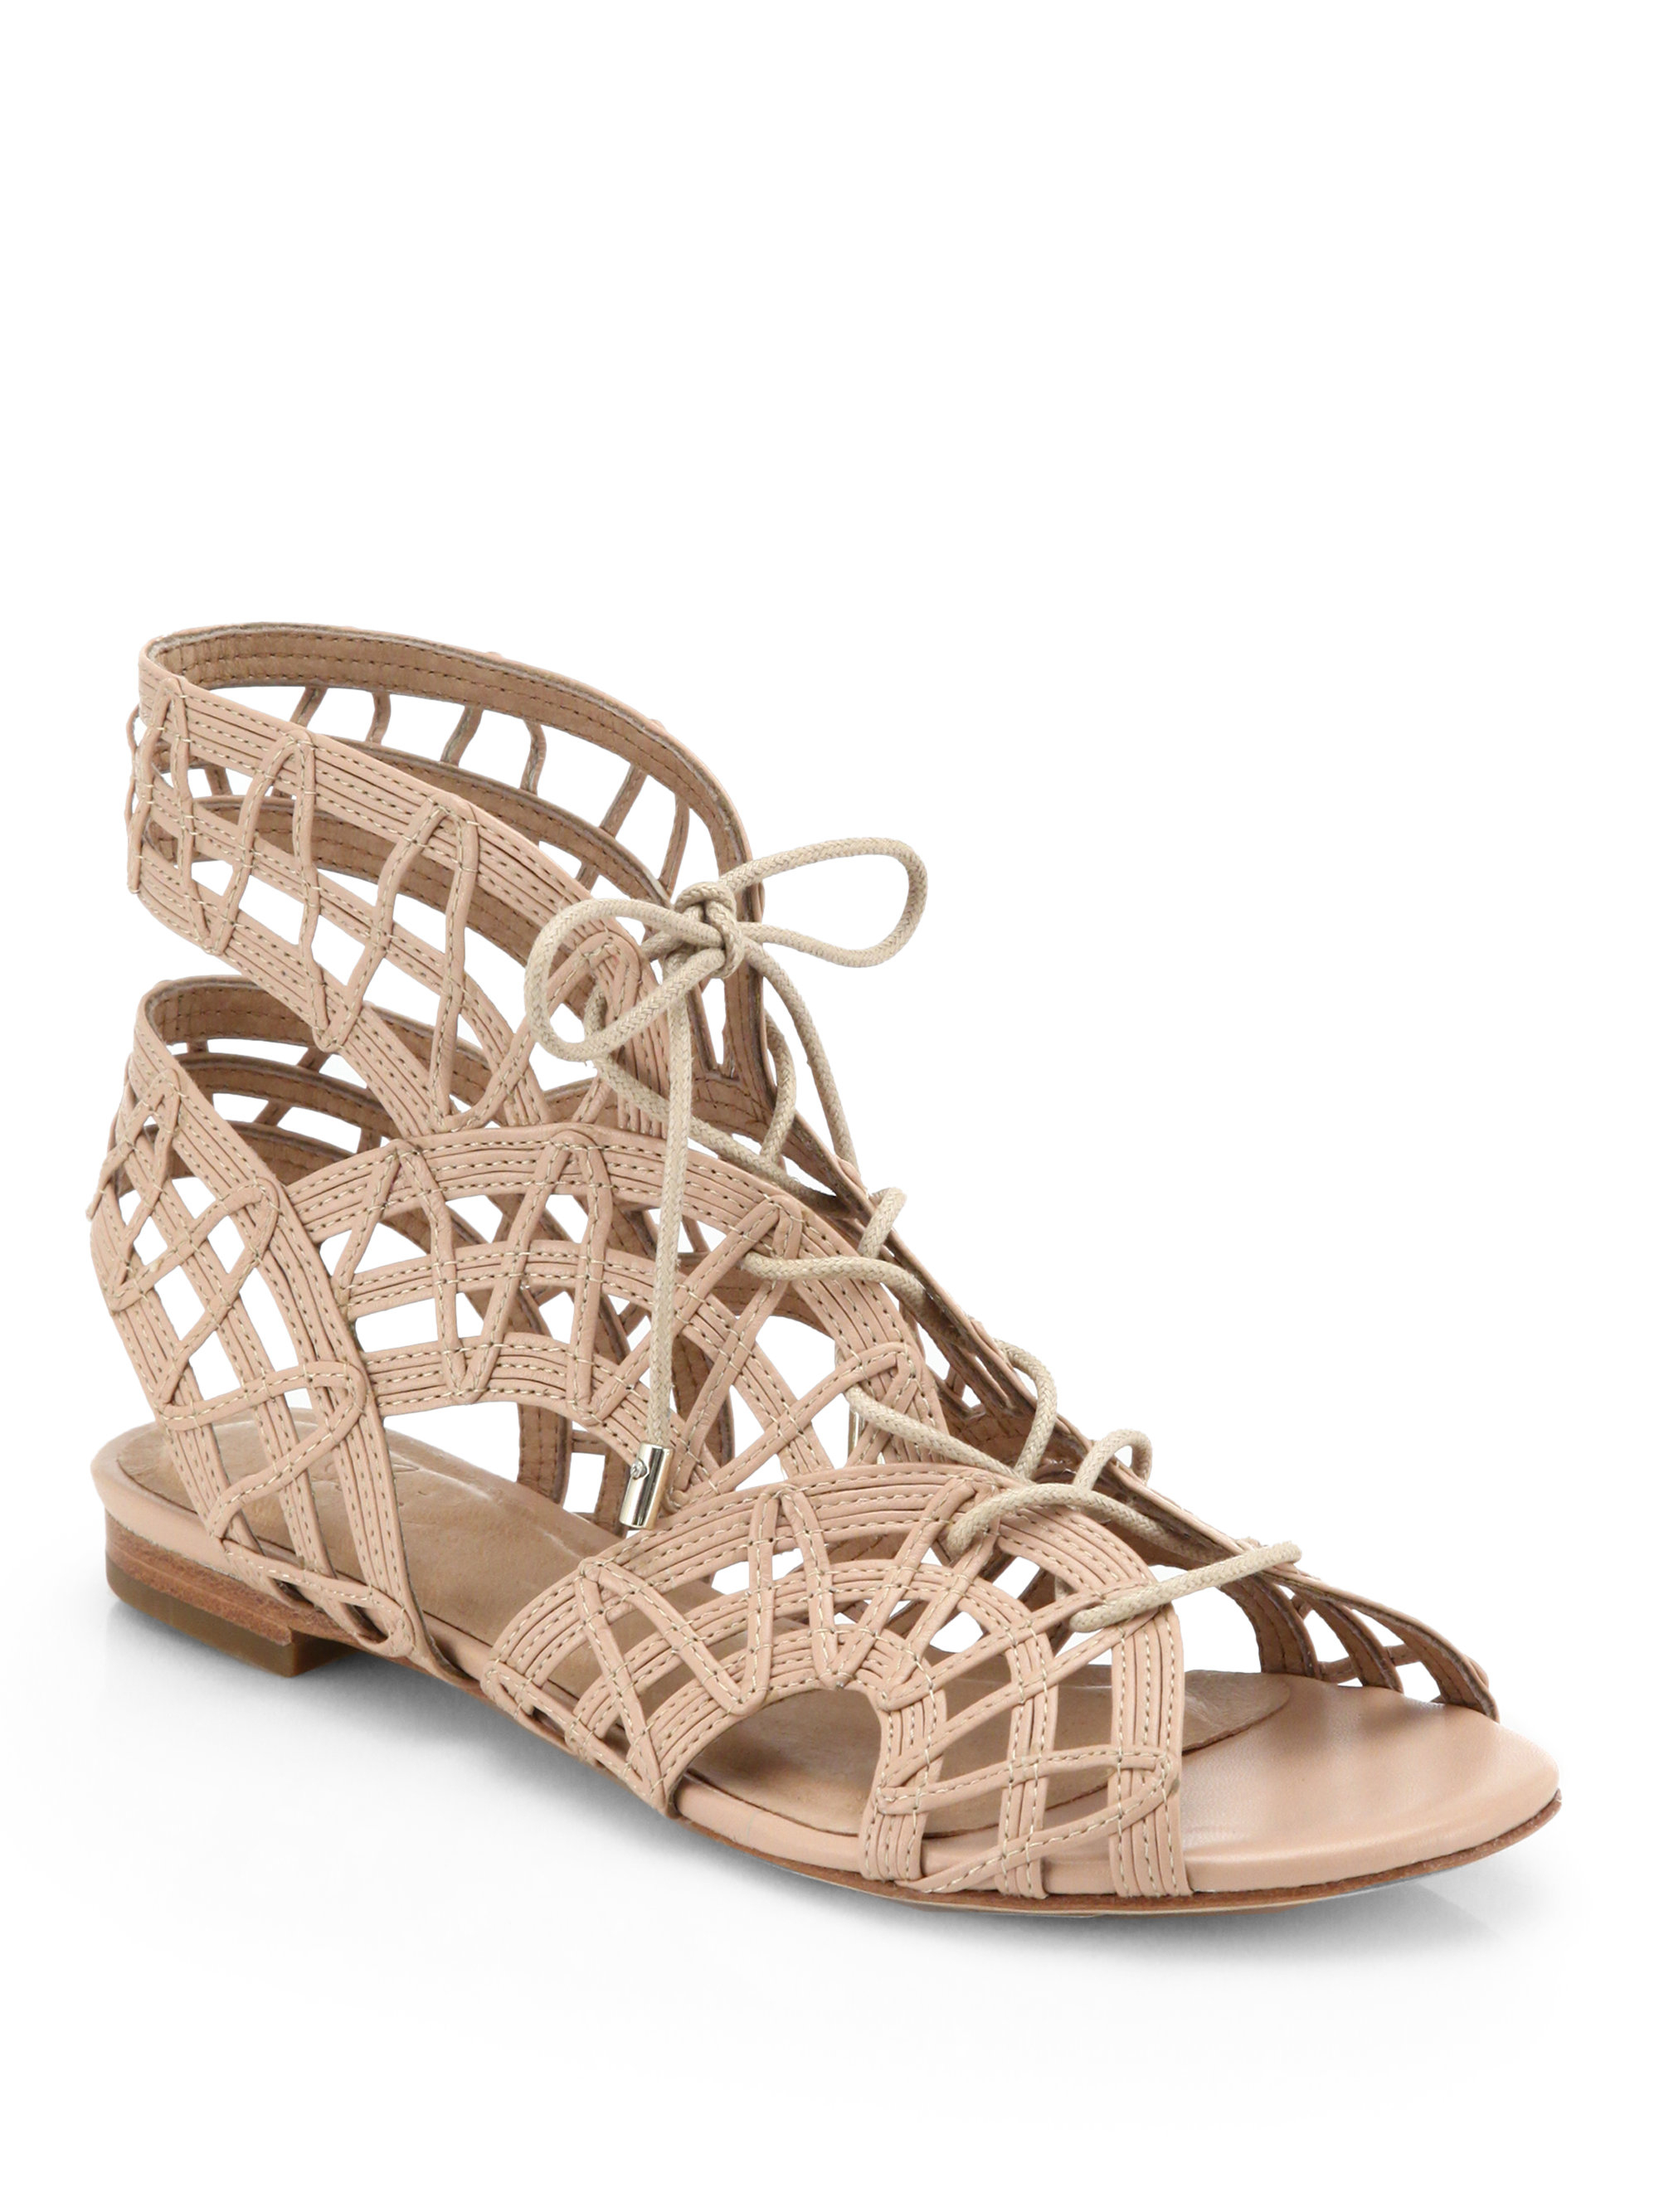 7662f8a69db6 Lyst - Joie Renee Caged Leather Gladiator Sandals in Natural